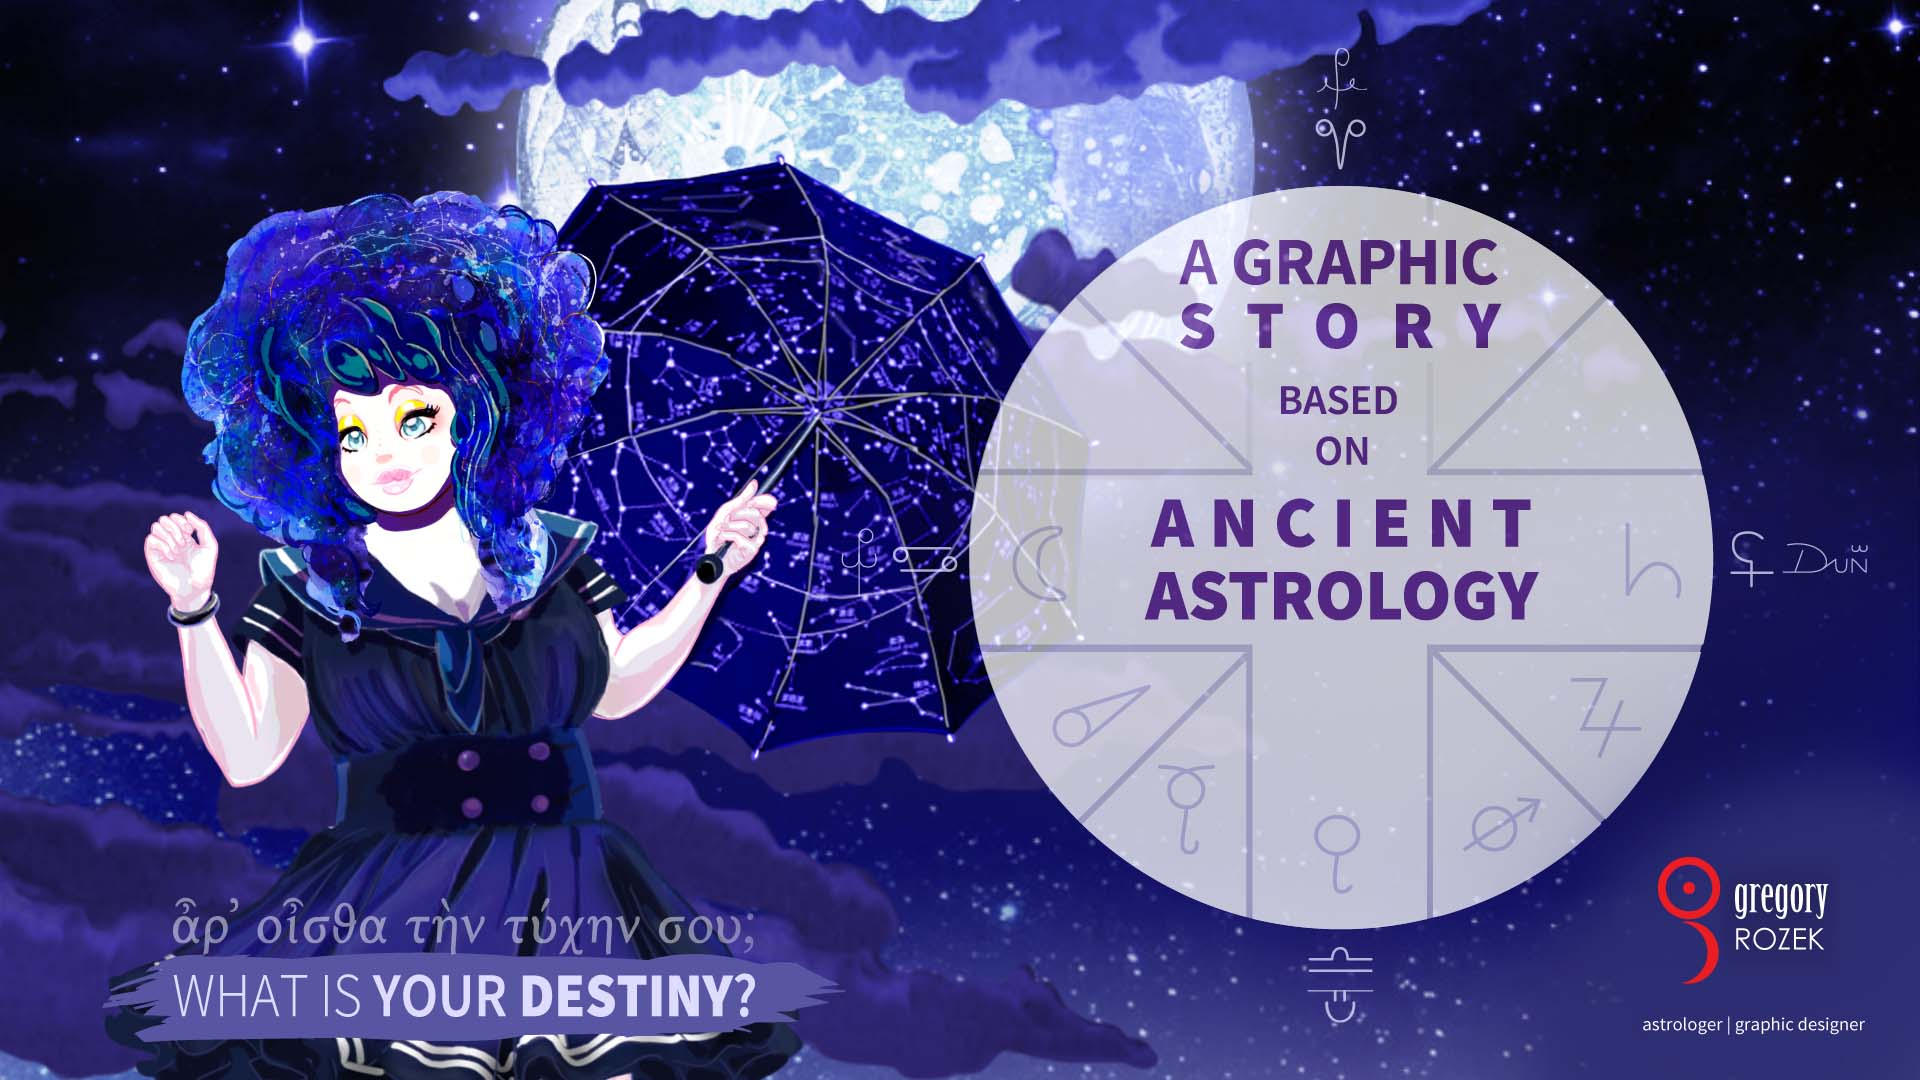 A Graphic Story Based on Ancient Astrology - by Gregory Rozek - astrologer and graphic designer: What Is Your Destiny? (Ancient Greek: ἆρ' οἶσθα τὴν τύχην σου;) [Moon, starry sky, female, girl, Selene, Luna, clouds, Full Moon, umbrella, constellations, thema mundi chart, astrological glyphs of the planets, planetary symbols meaning)